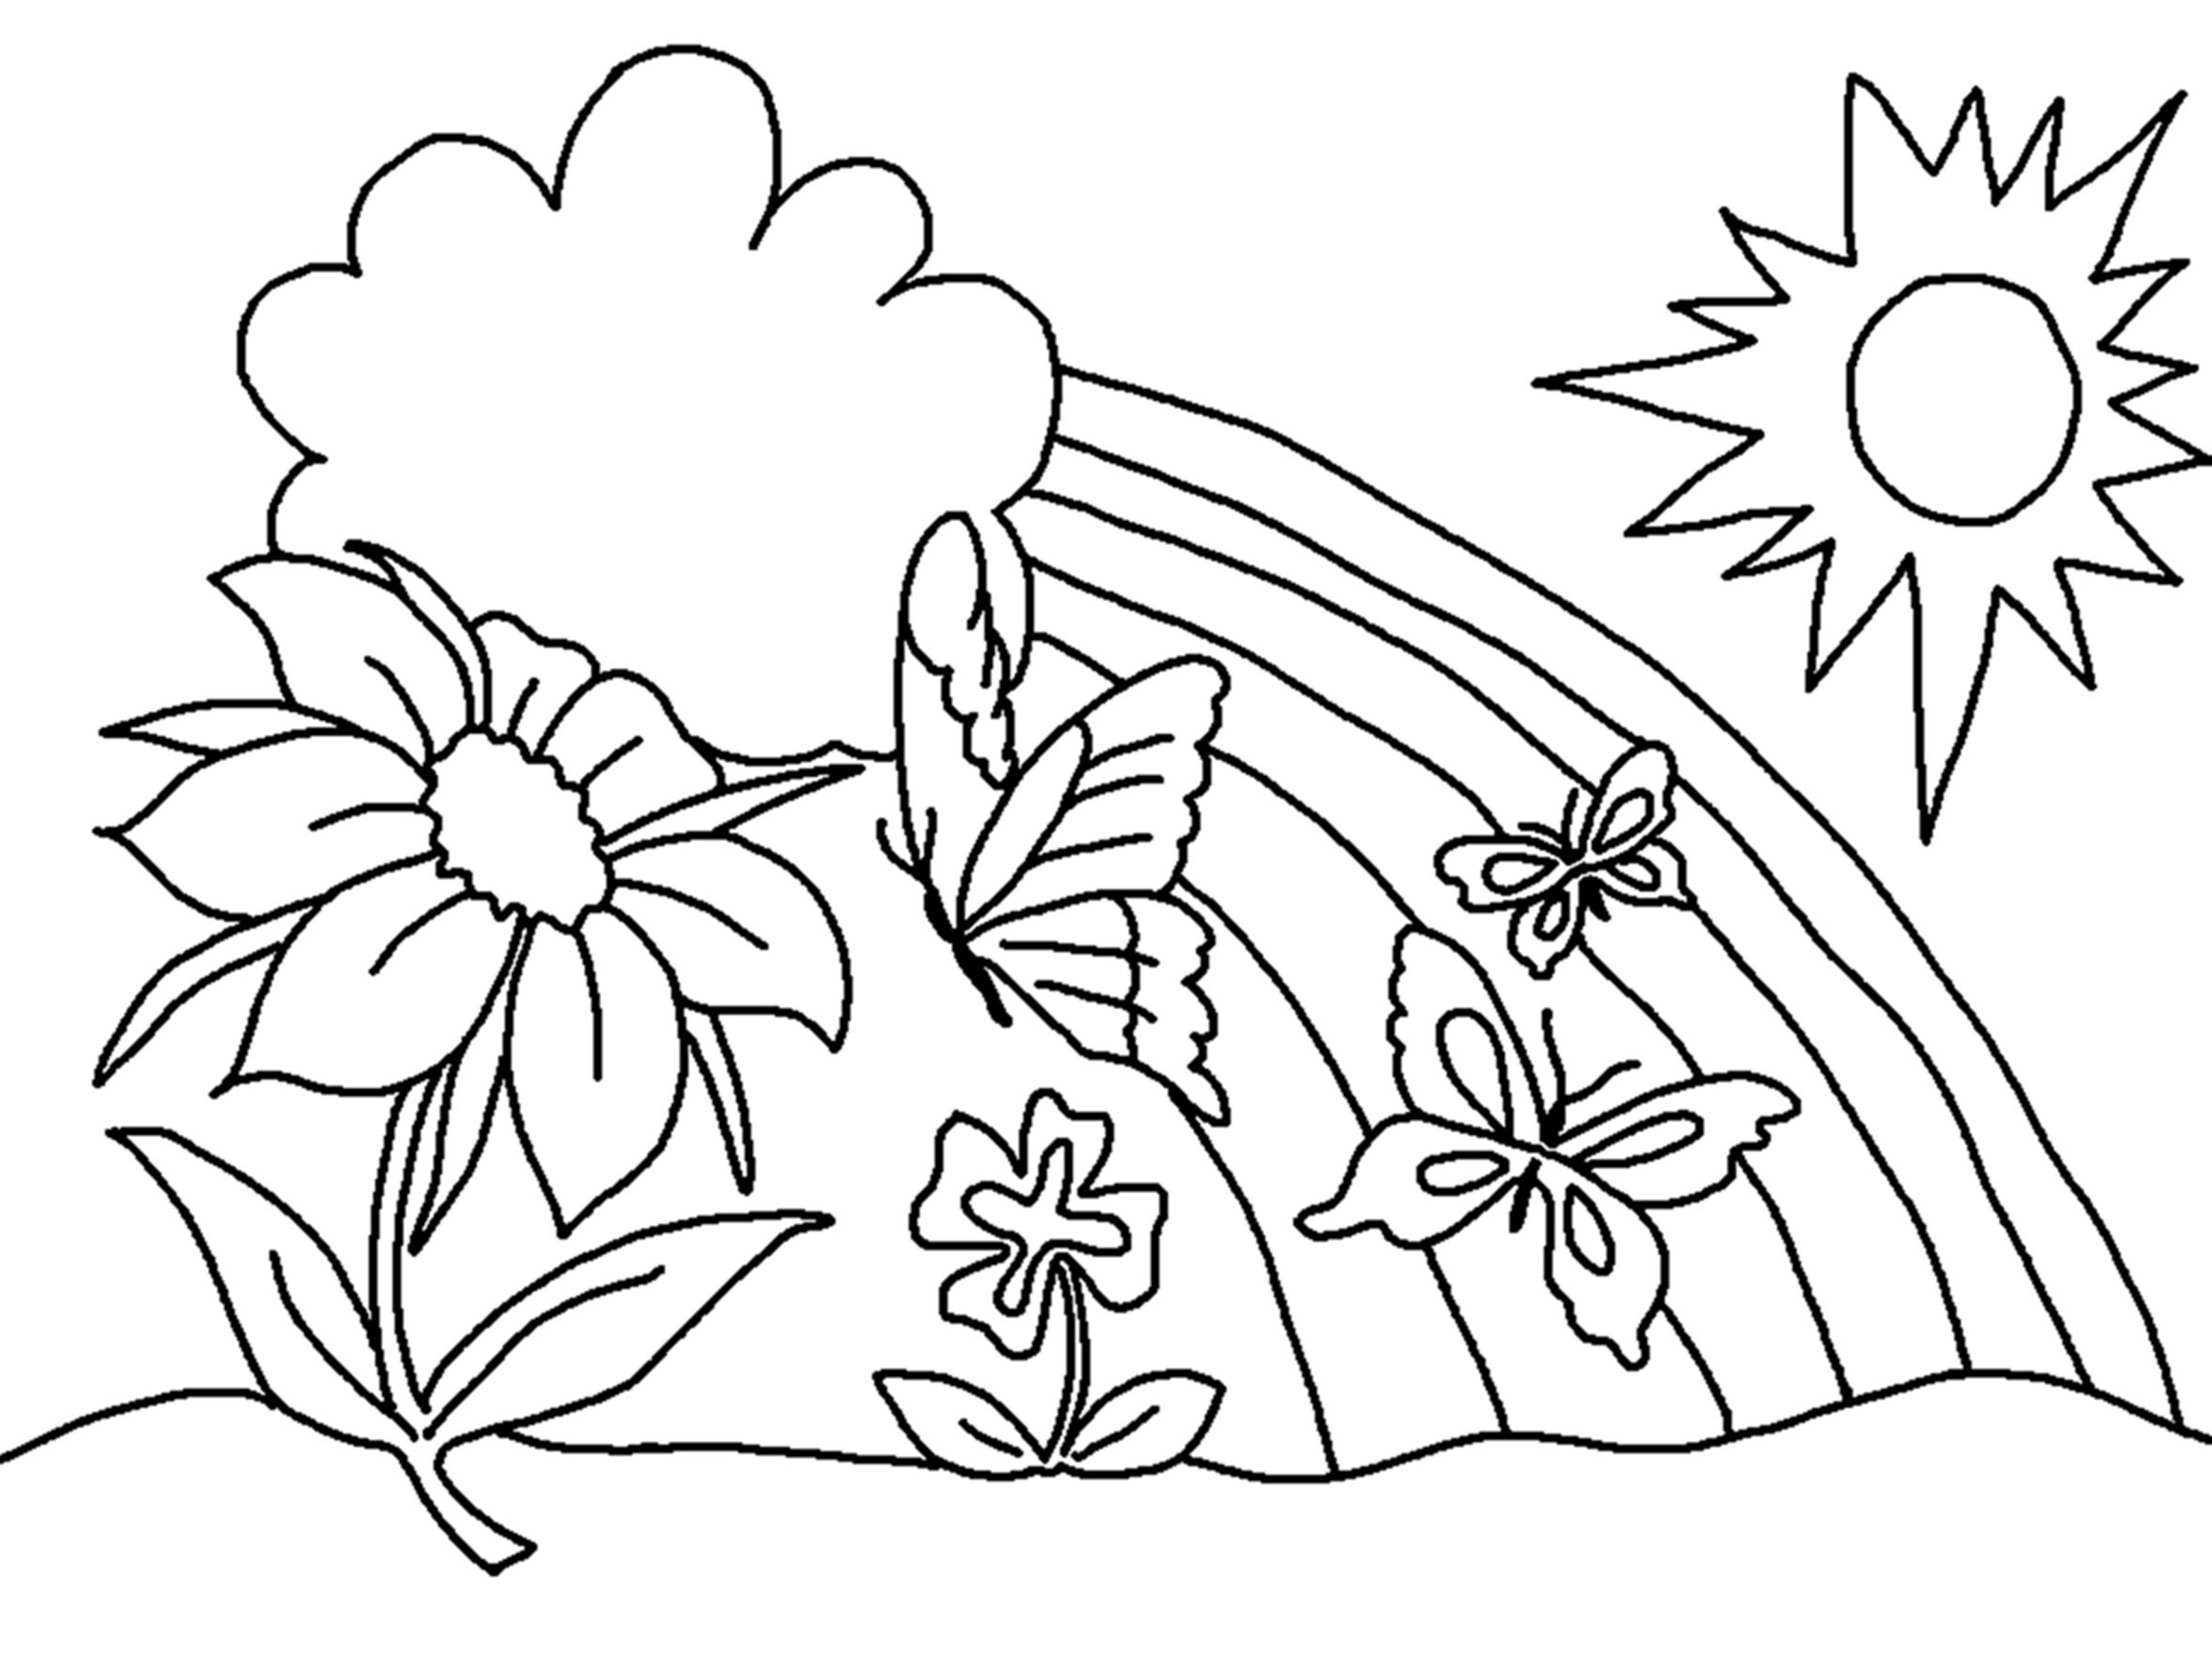 Free Printable Coloring Pages For Preschoolers – With Girls Also - Free Printable Coloring Pages For Preschoolers